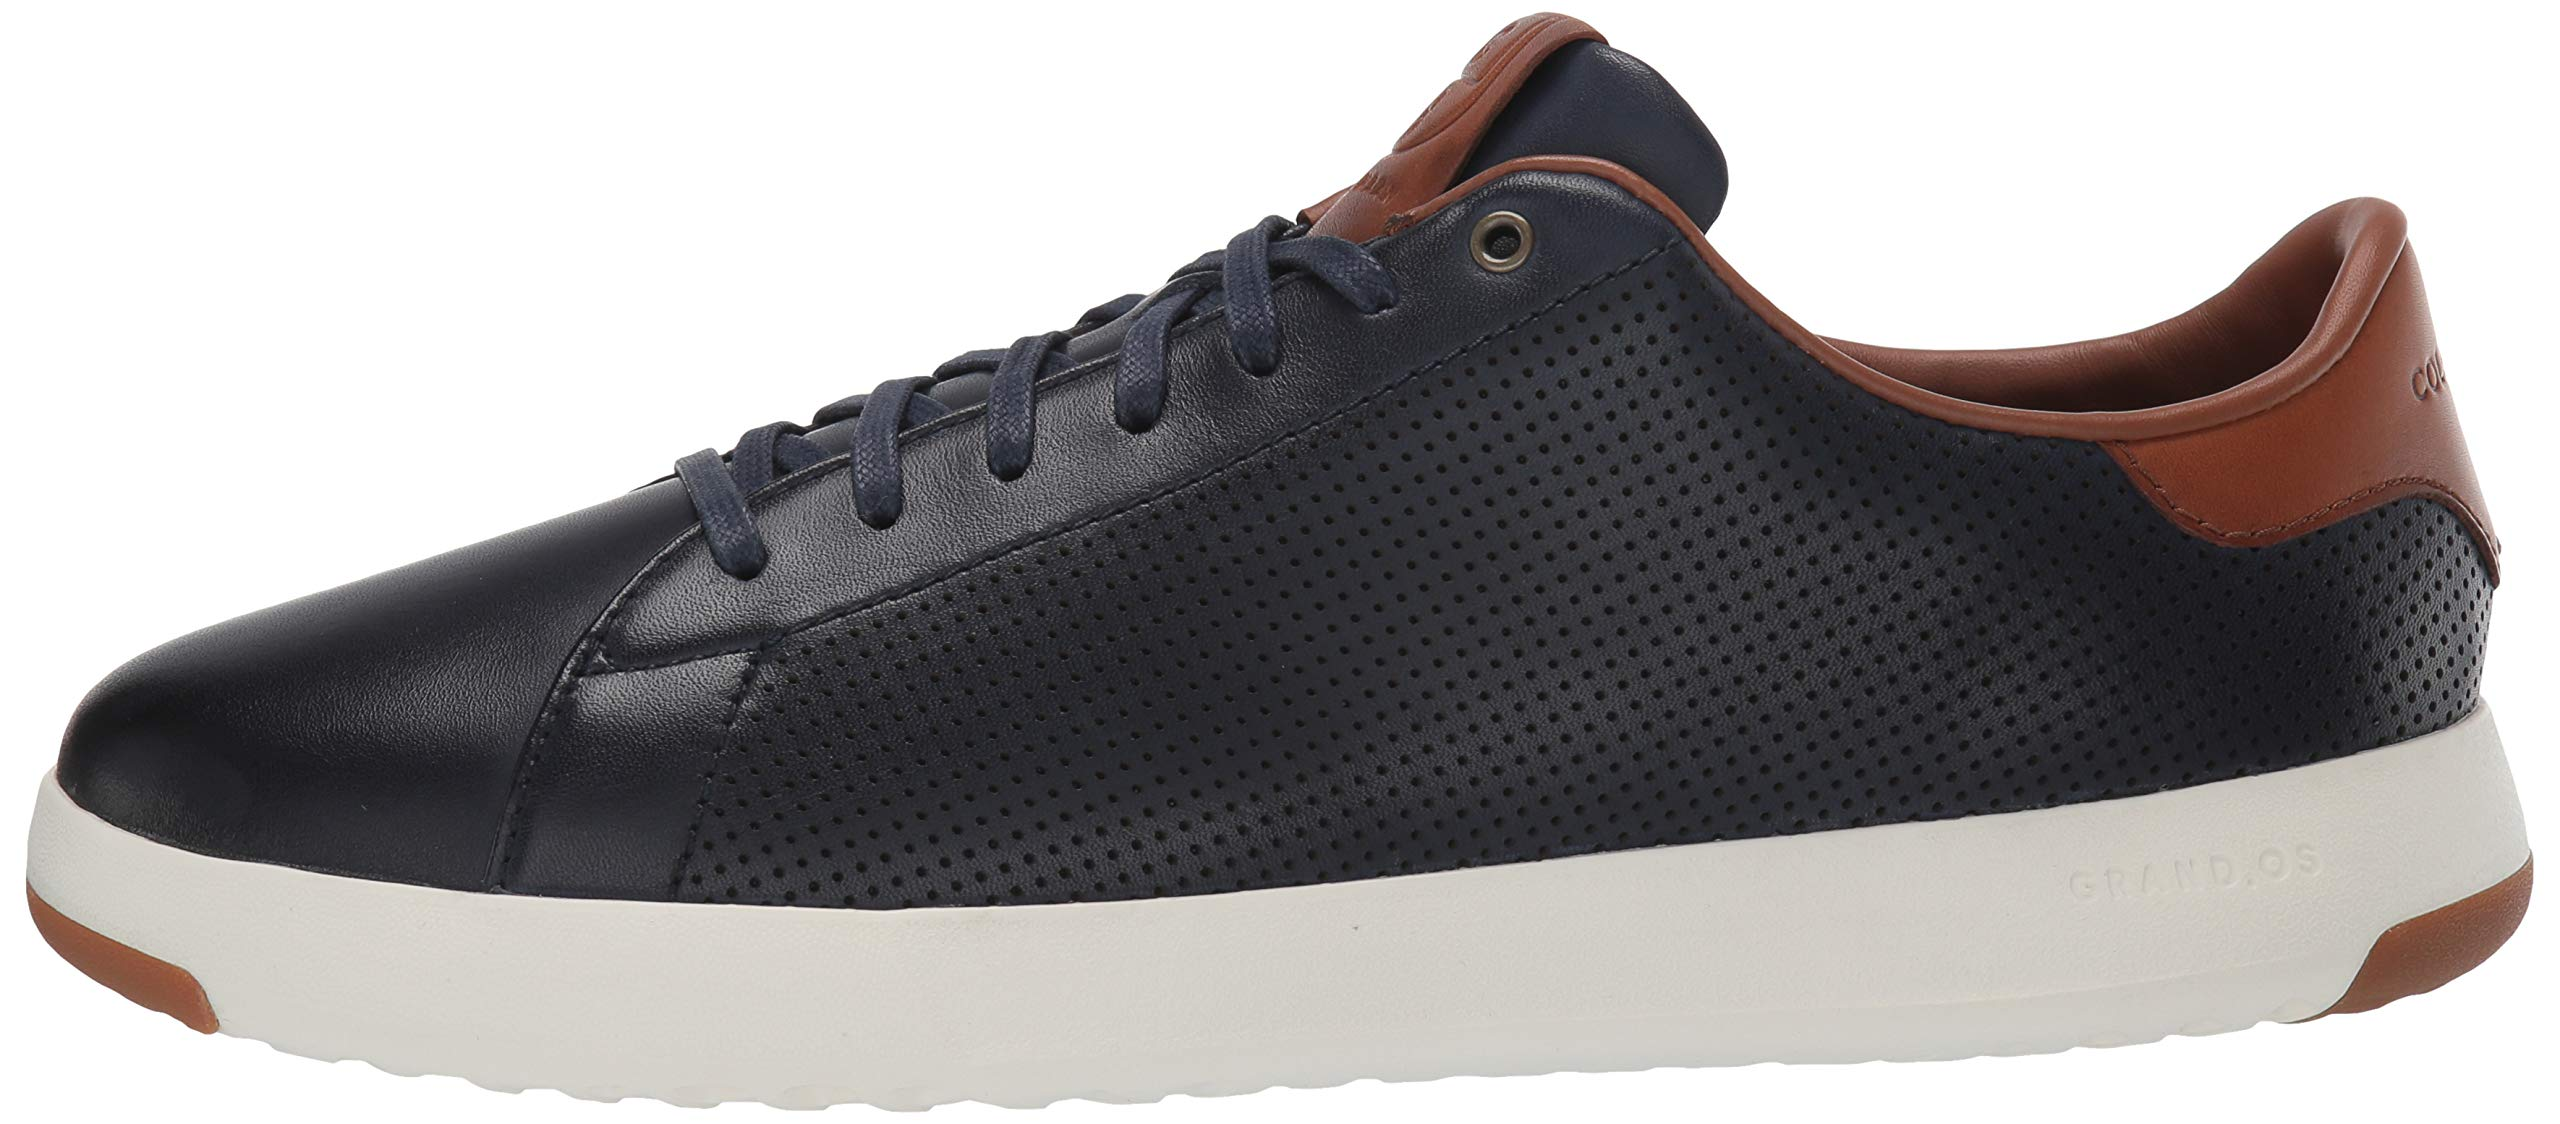 Cole Haan Mens Grandpro Tennis Sneaker 7 Navy Handstained Leather by Cole Haan (Image #5)